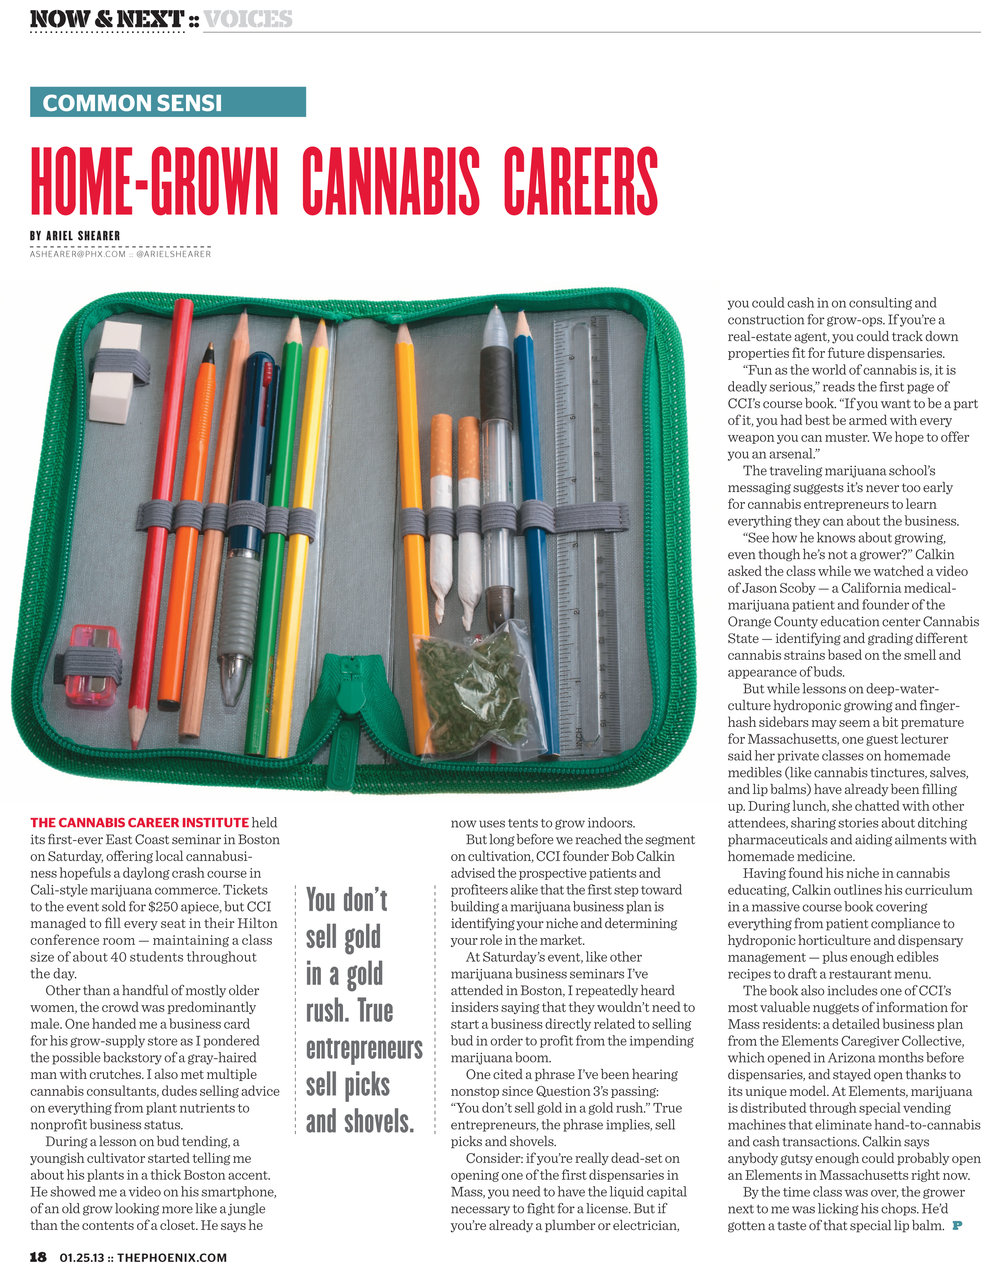 012513_COMMONSENSI - cannabis careers.jpg